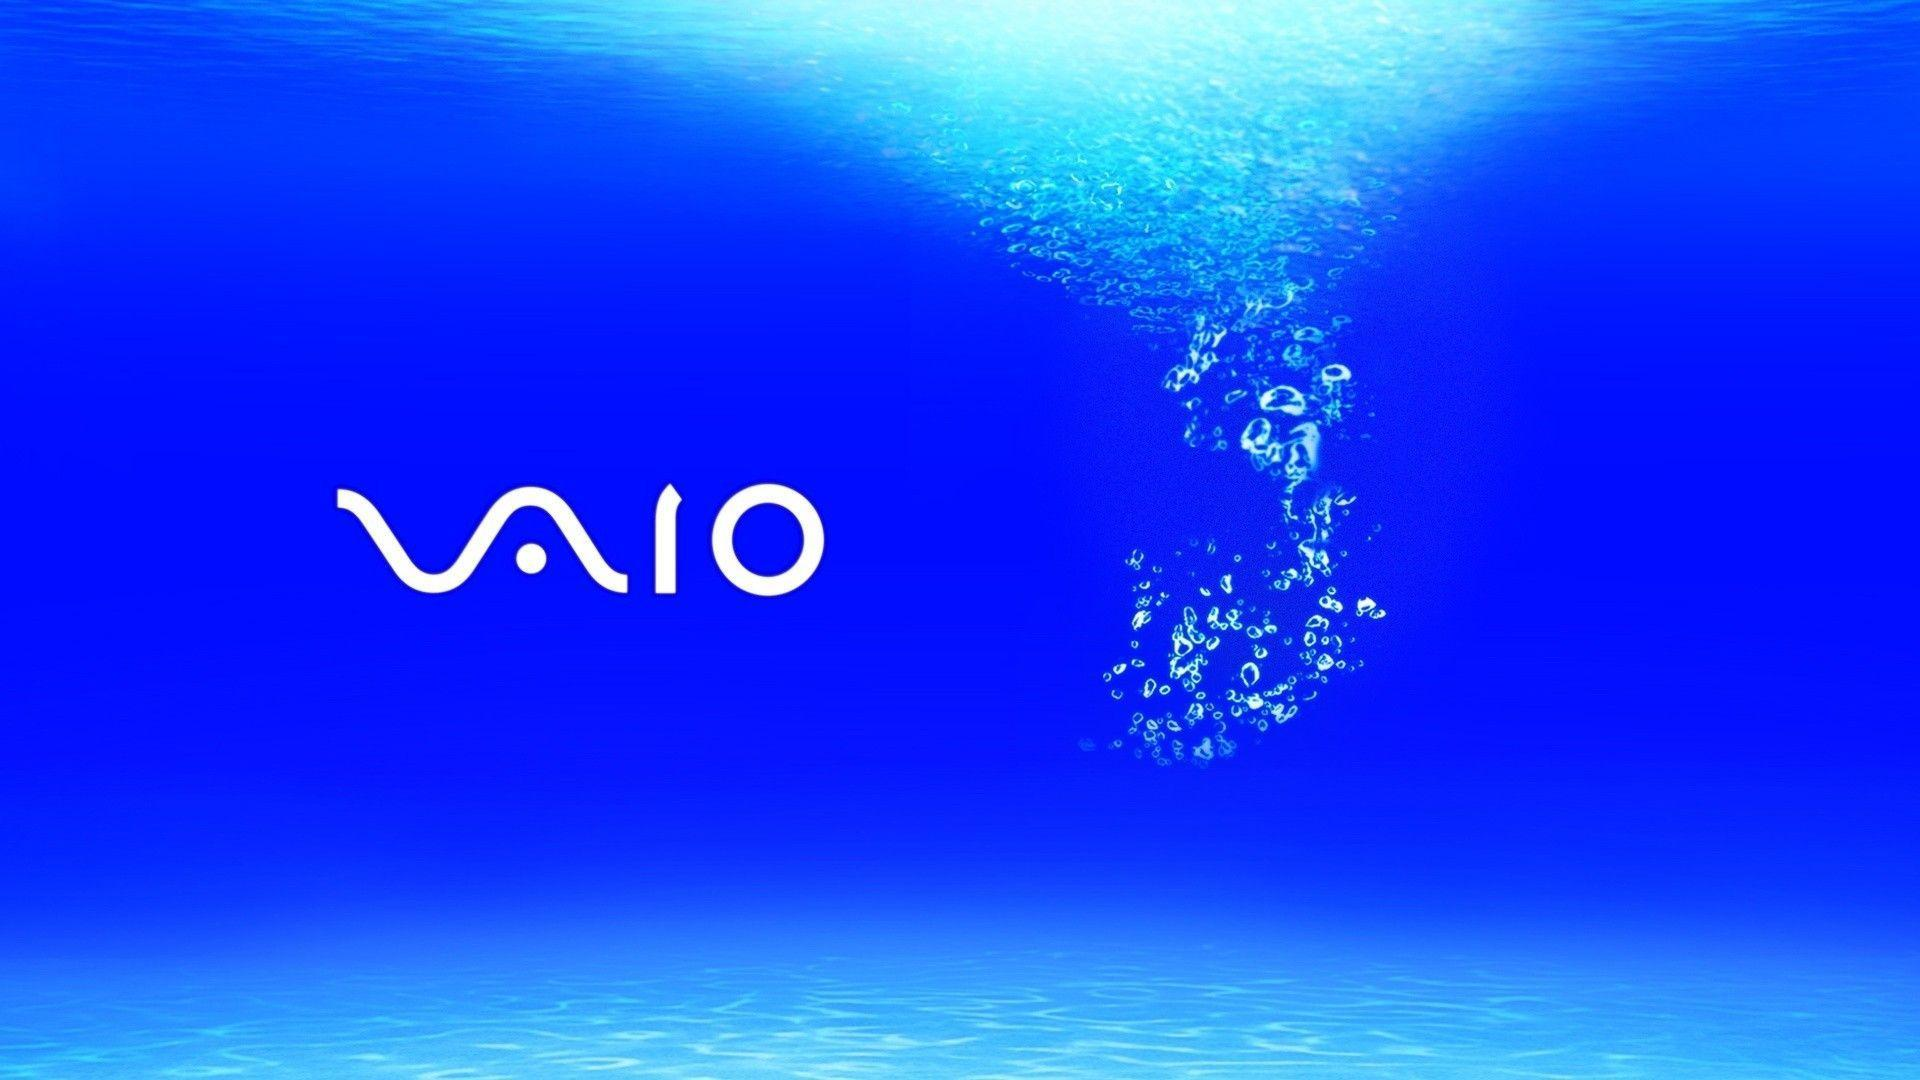 Sony Vaio Wallpaper Or Themes: Laptops Vaio Wallpapers 2015